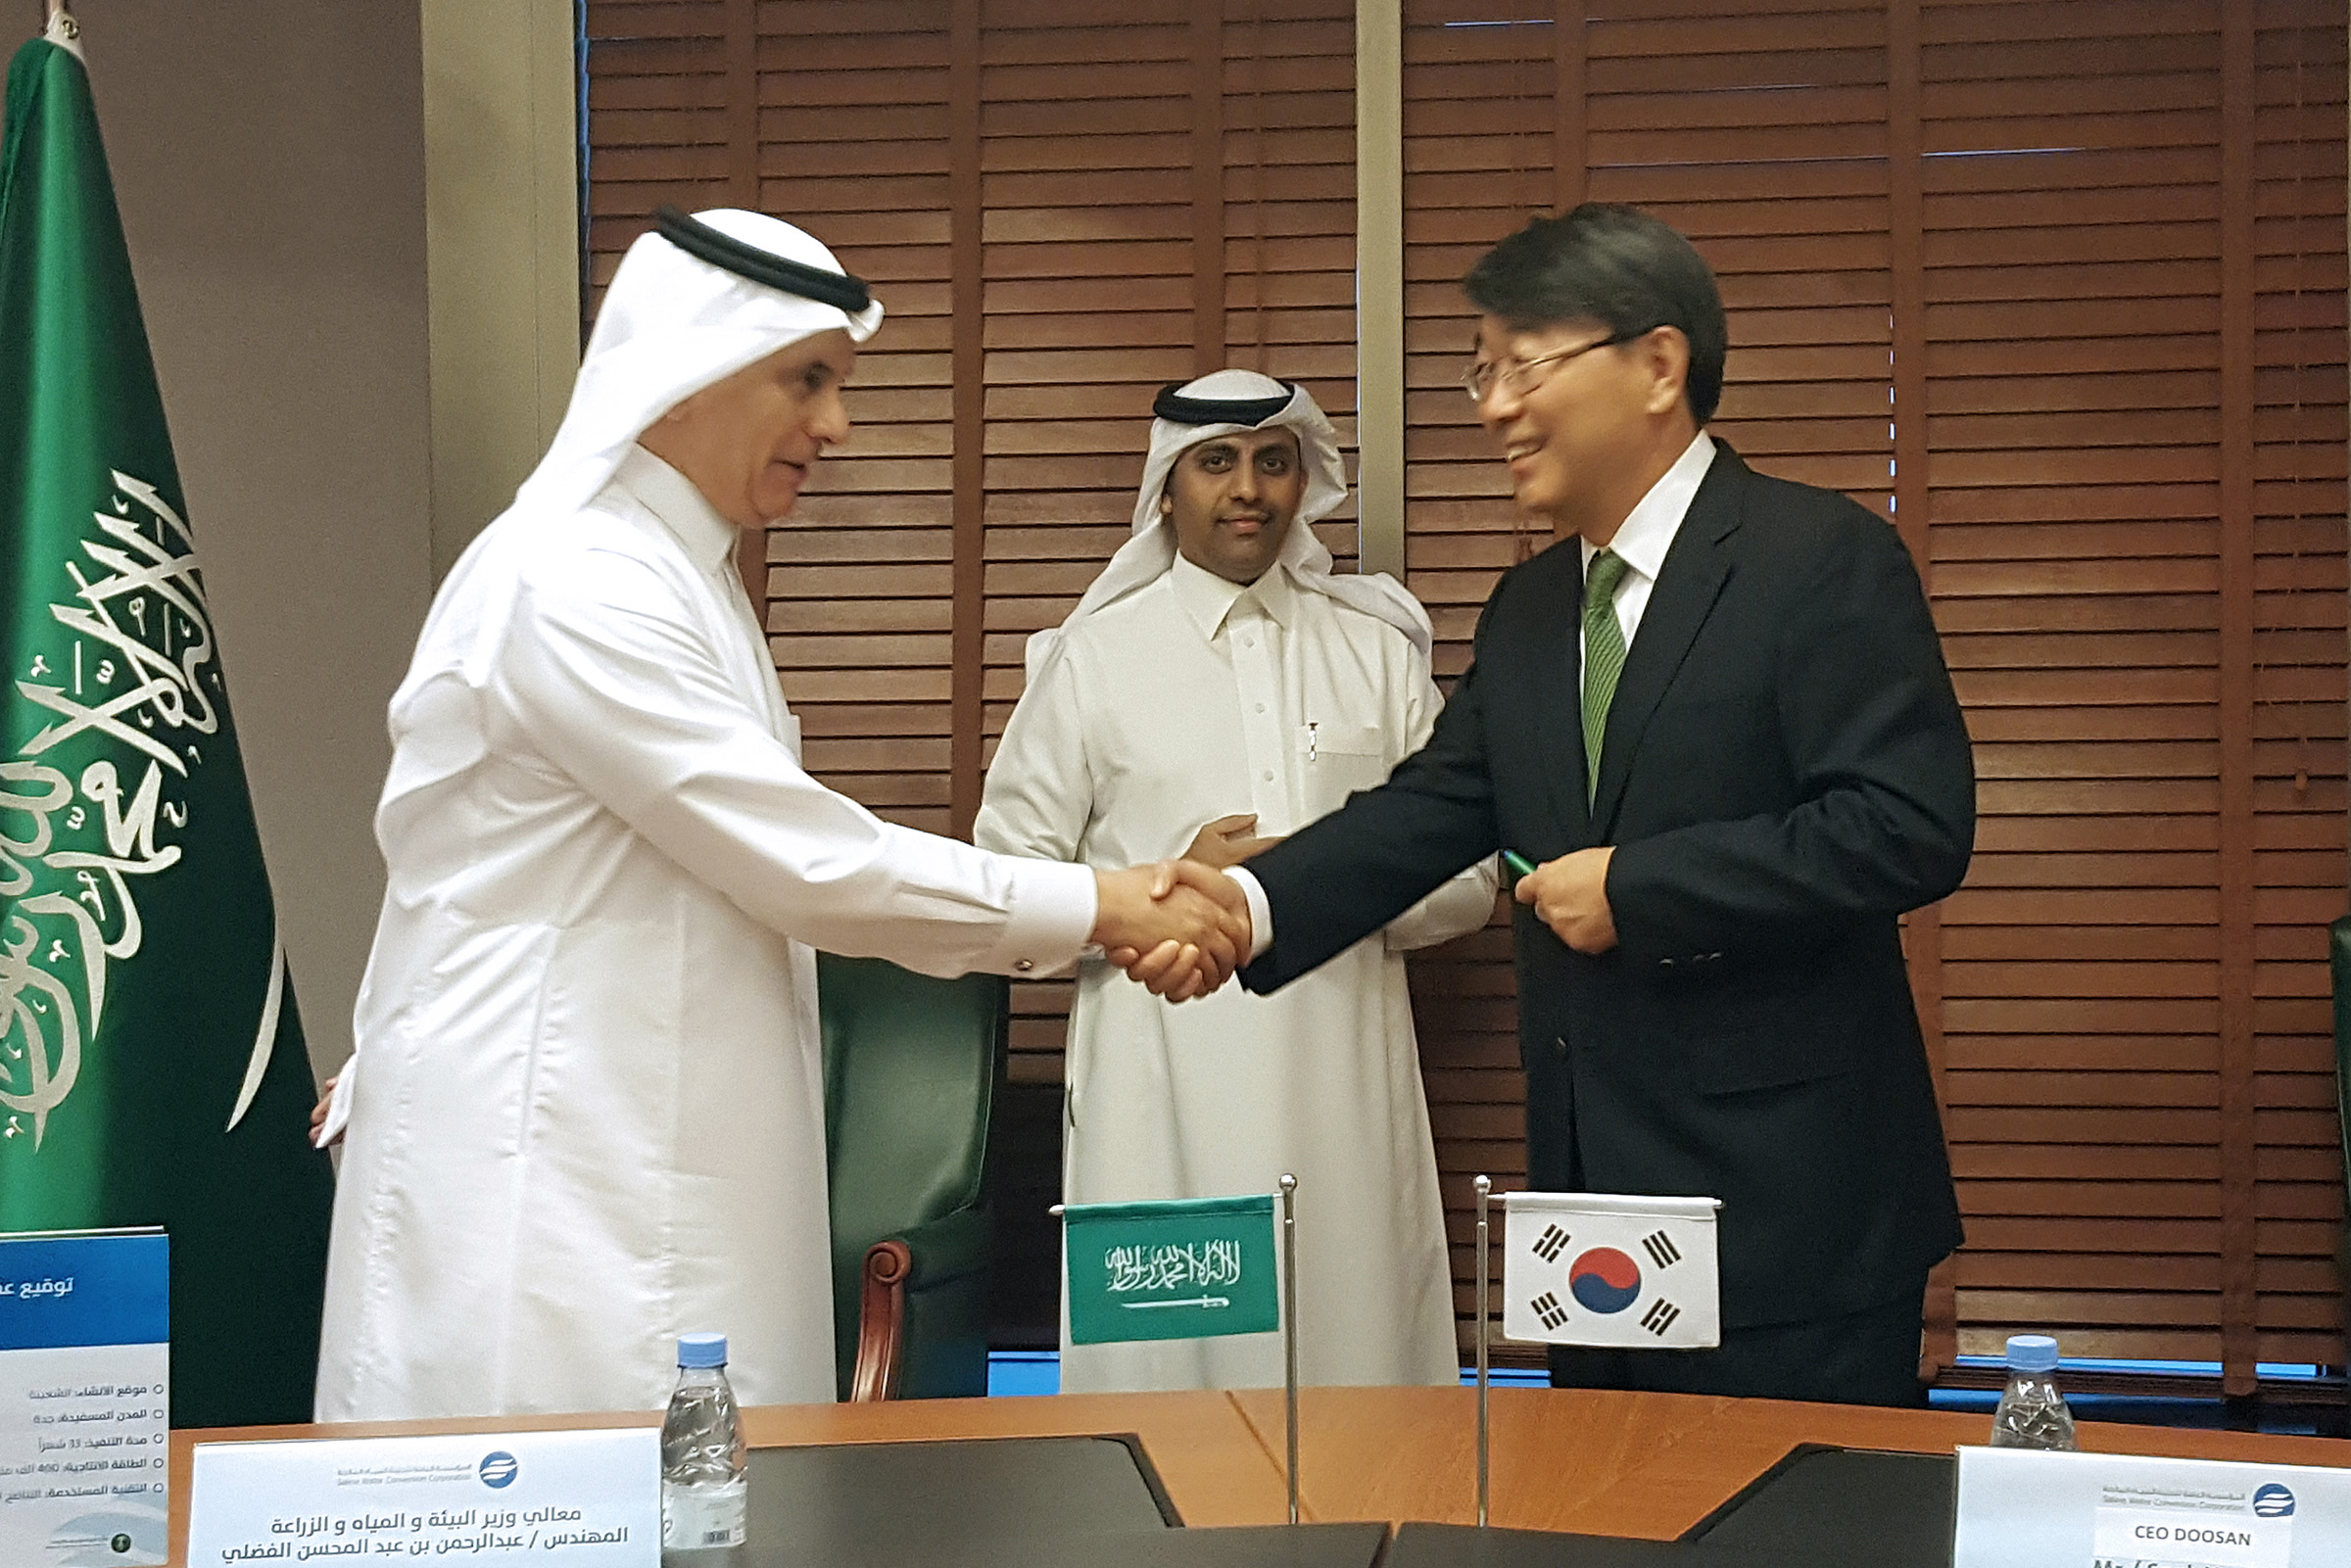 Yoon Seok-won (right), vice president of Doosan Heavy Industries, and Saudi Arabia's Minister of Environment Water and Agriculture shake hands after signing a seawater desalination plant construction deal in Saudi Arabia on March 28 (local time).